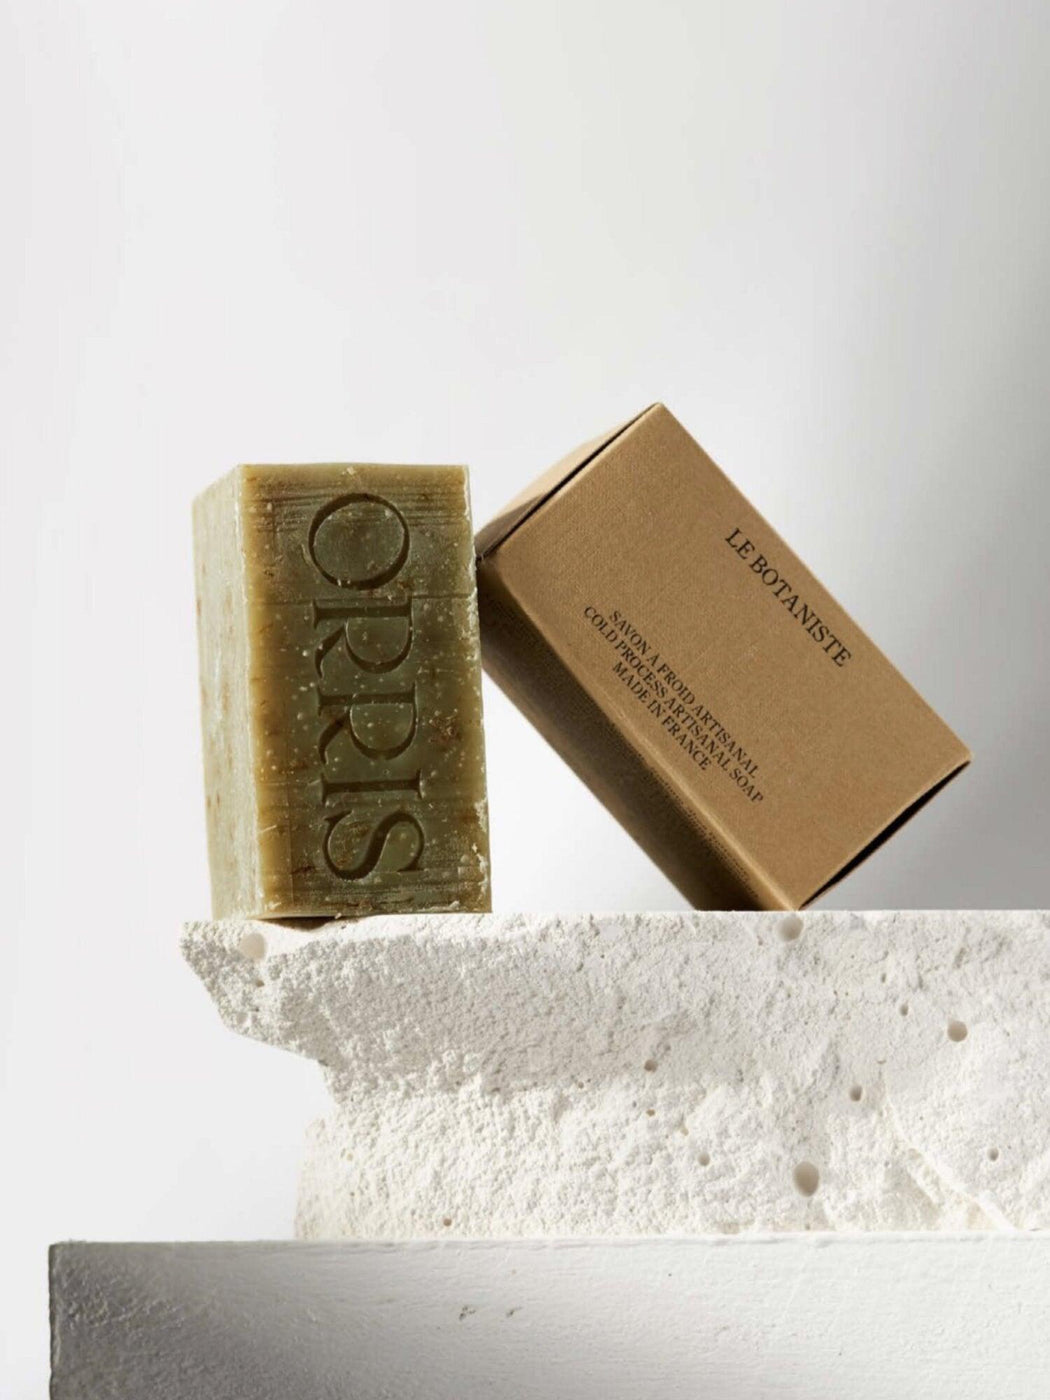 Le Botaniste Soap Bar